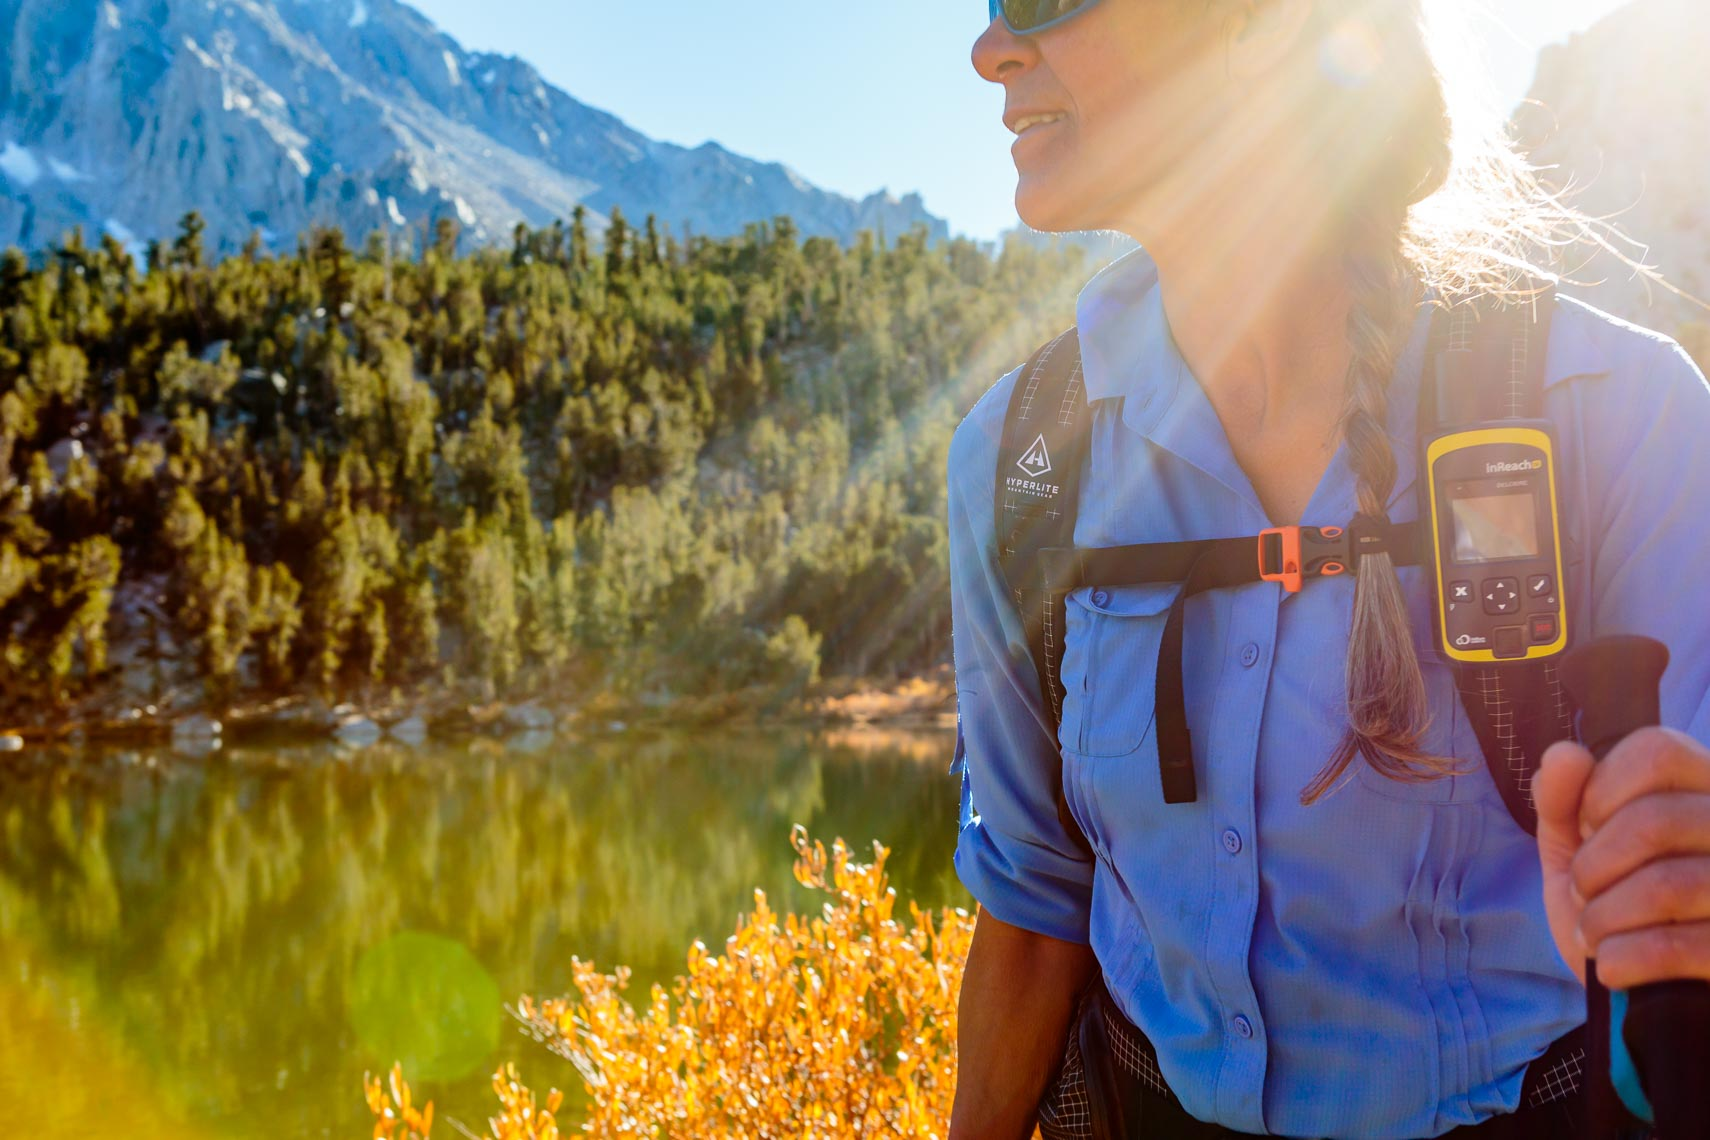 Hiker Portrait Kings Canyon National Park | Michael DeYoung